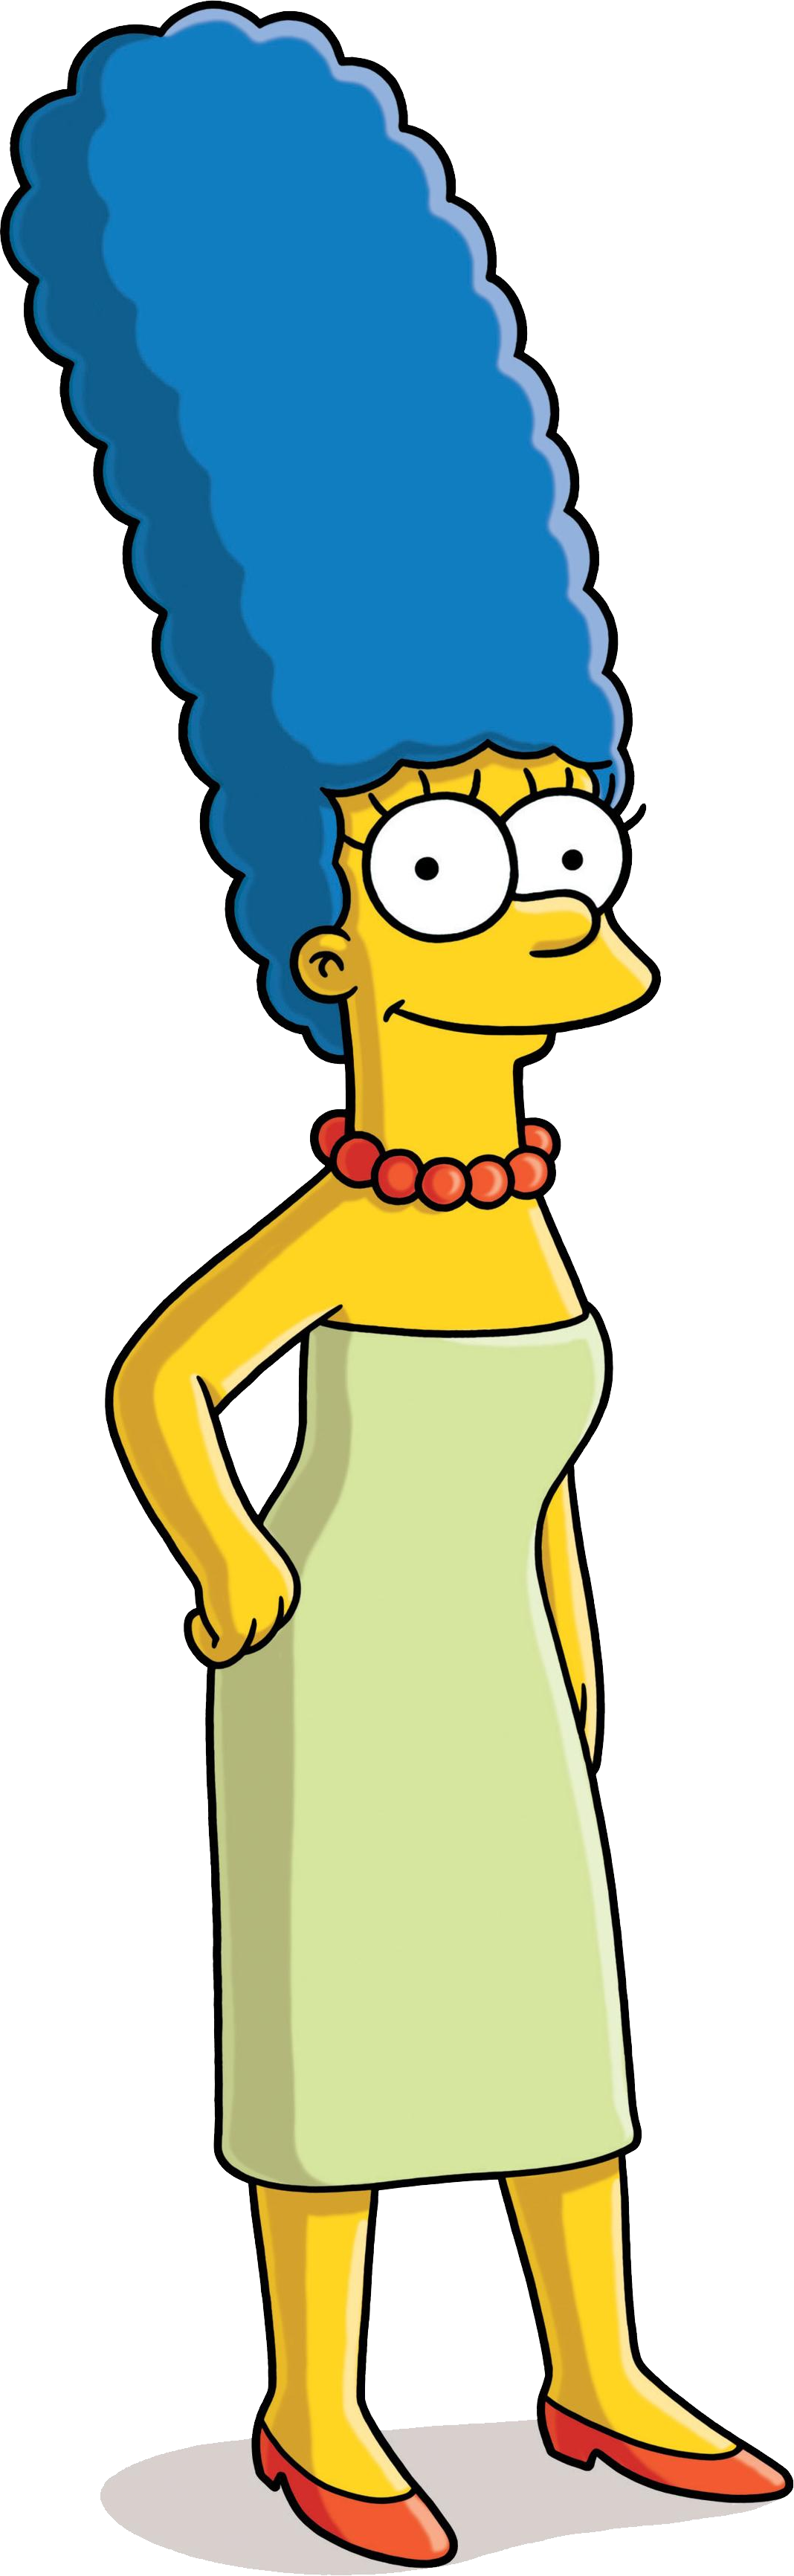 Simpsons marge png. Simpson